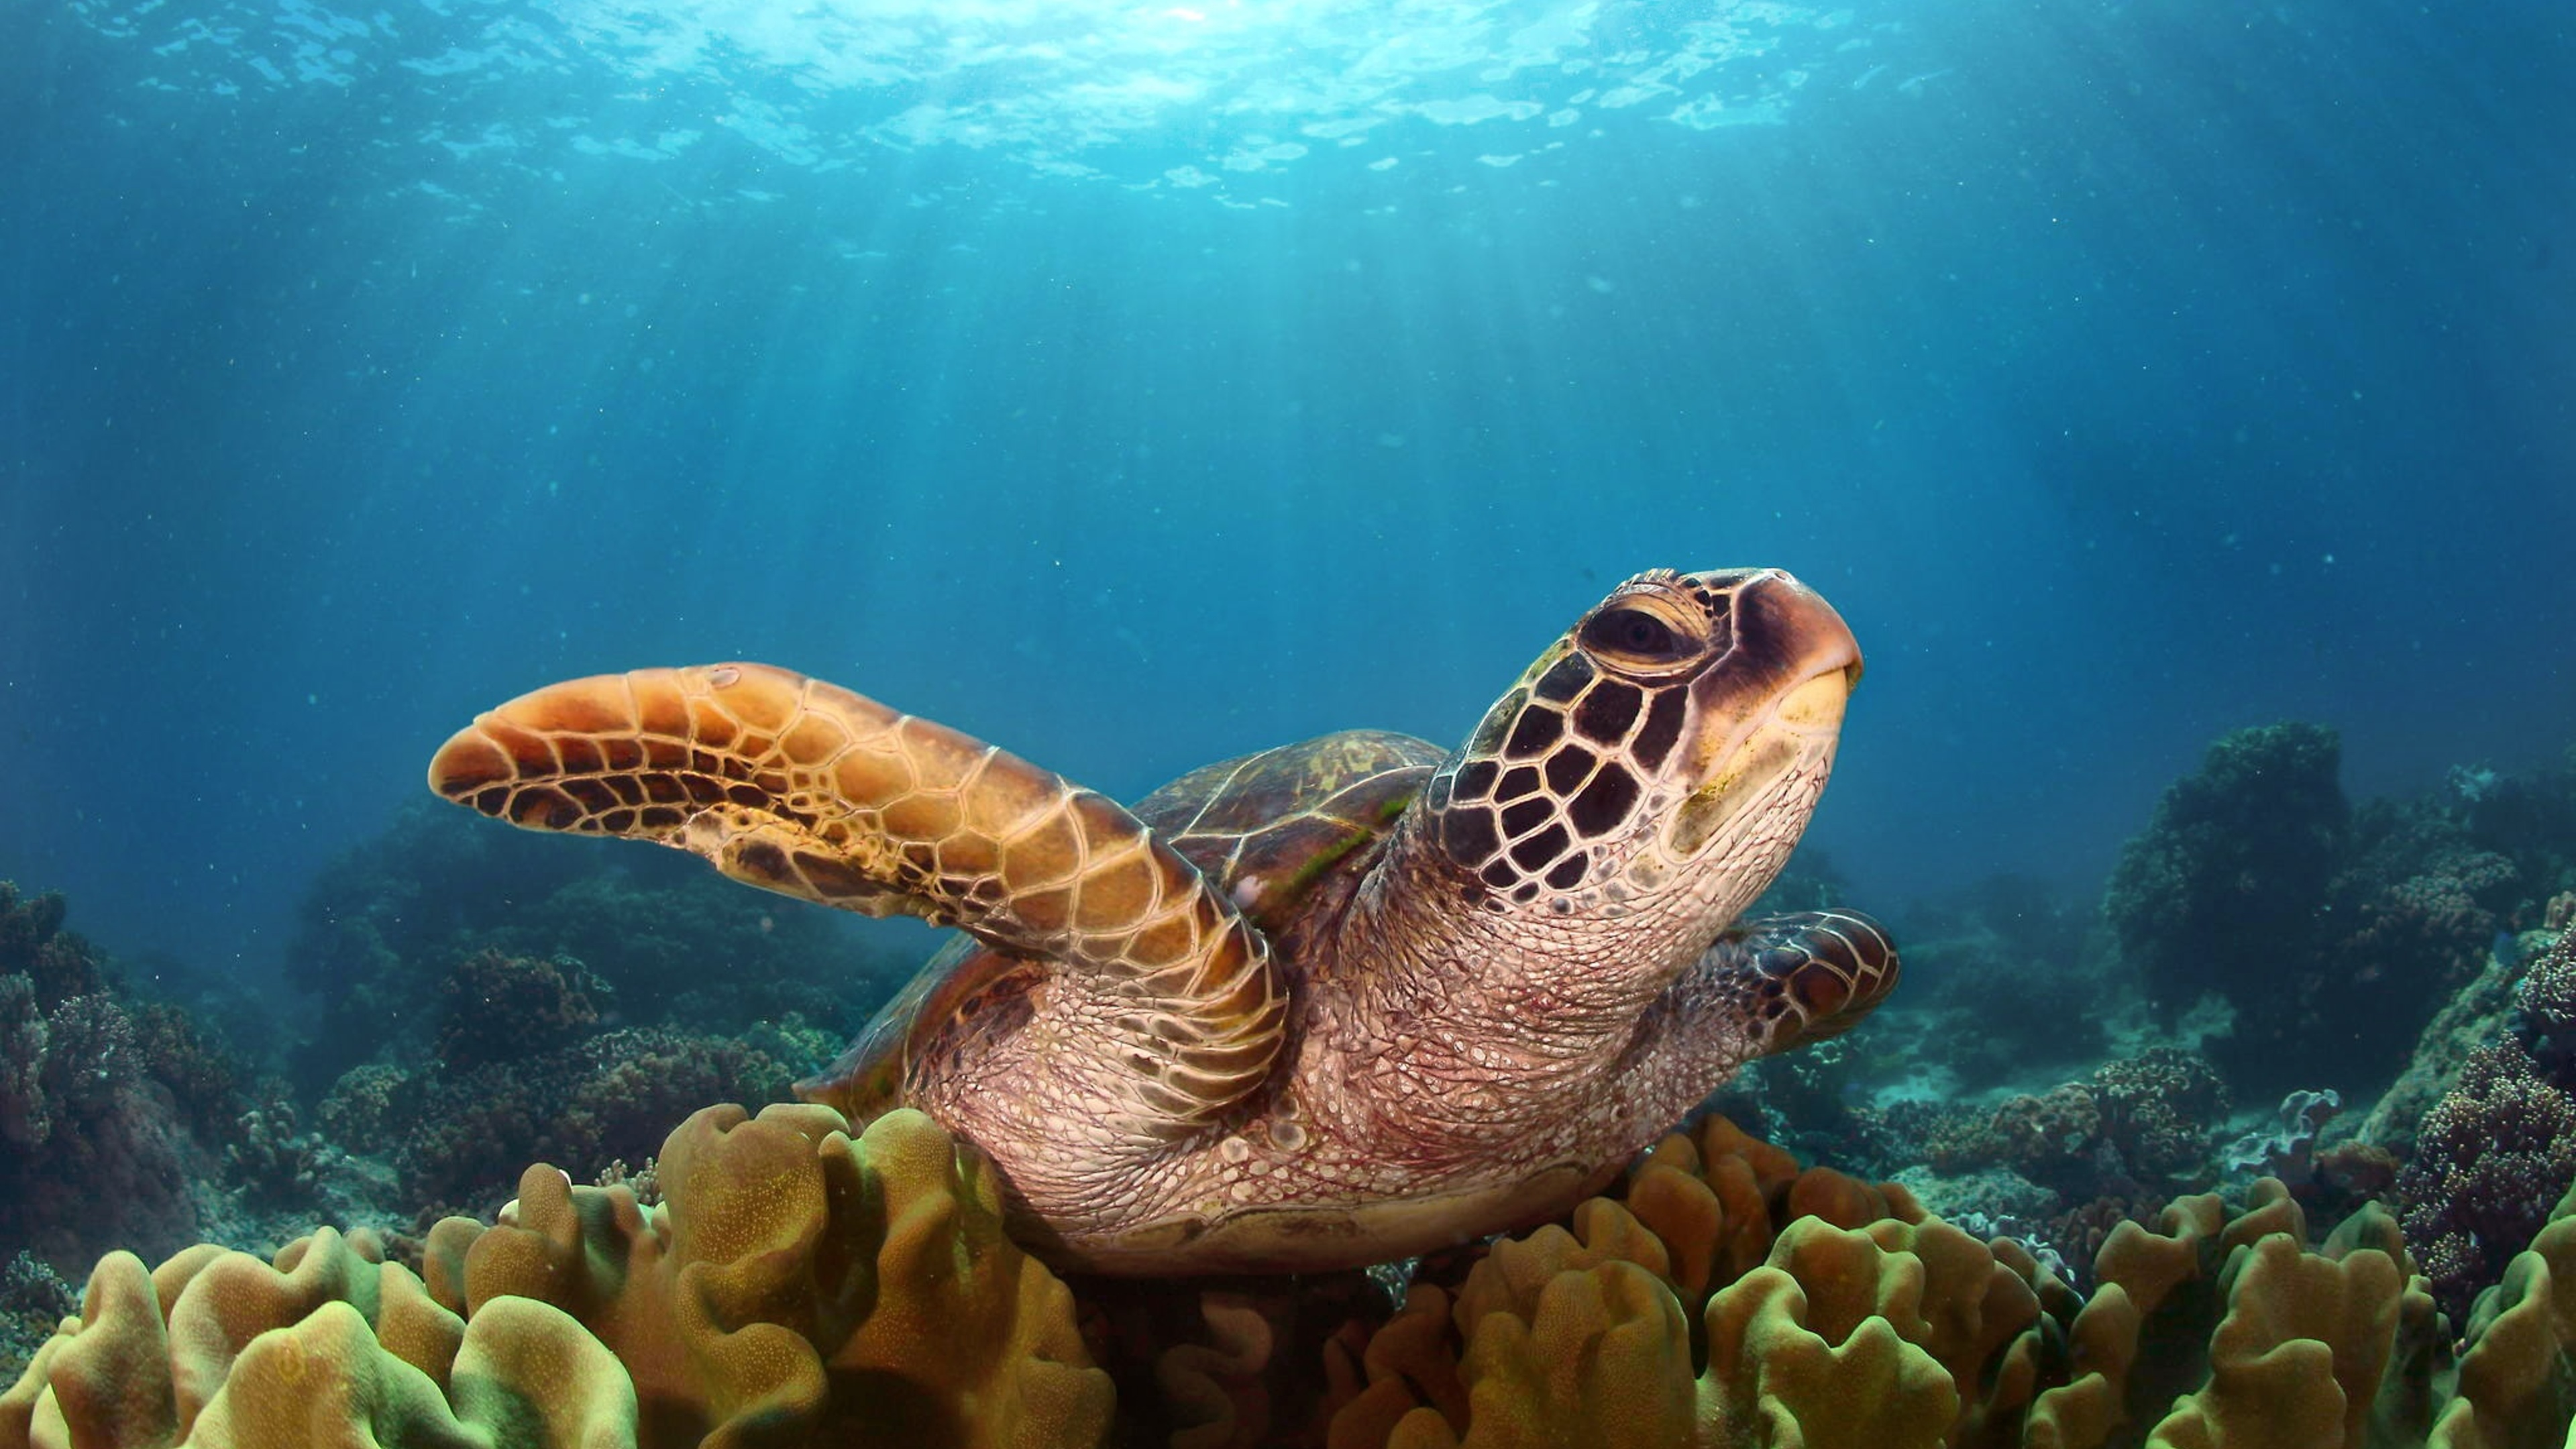 Hd Background Wallpaper 800x600: 3840x2160 Turtle Hd 4k HD 4k Wallpapers, Images